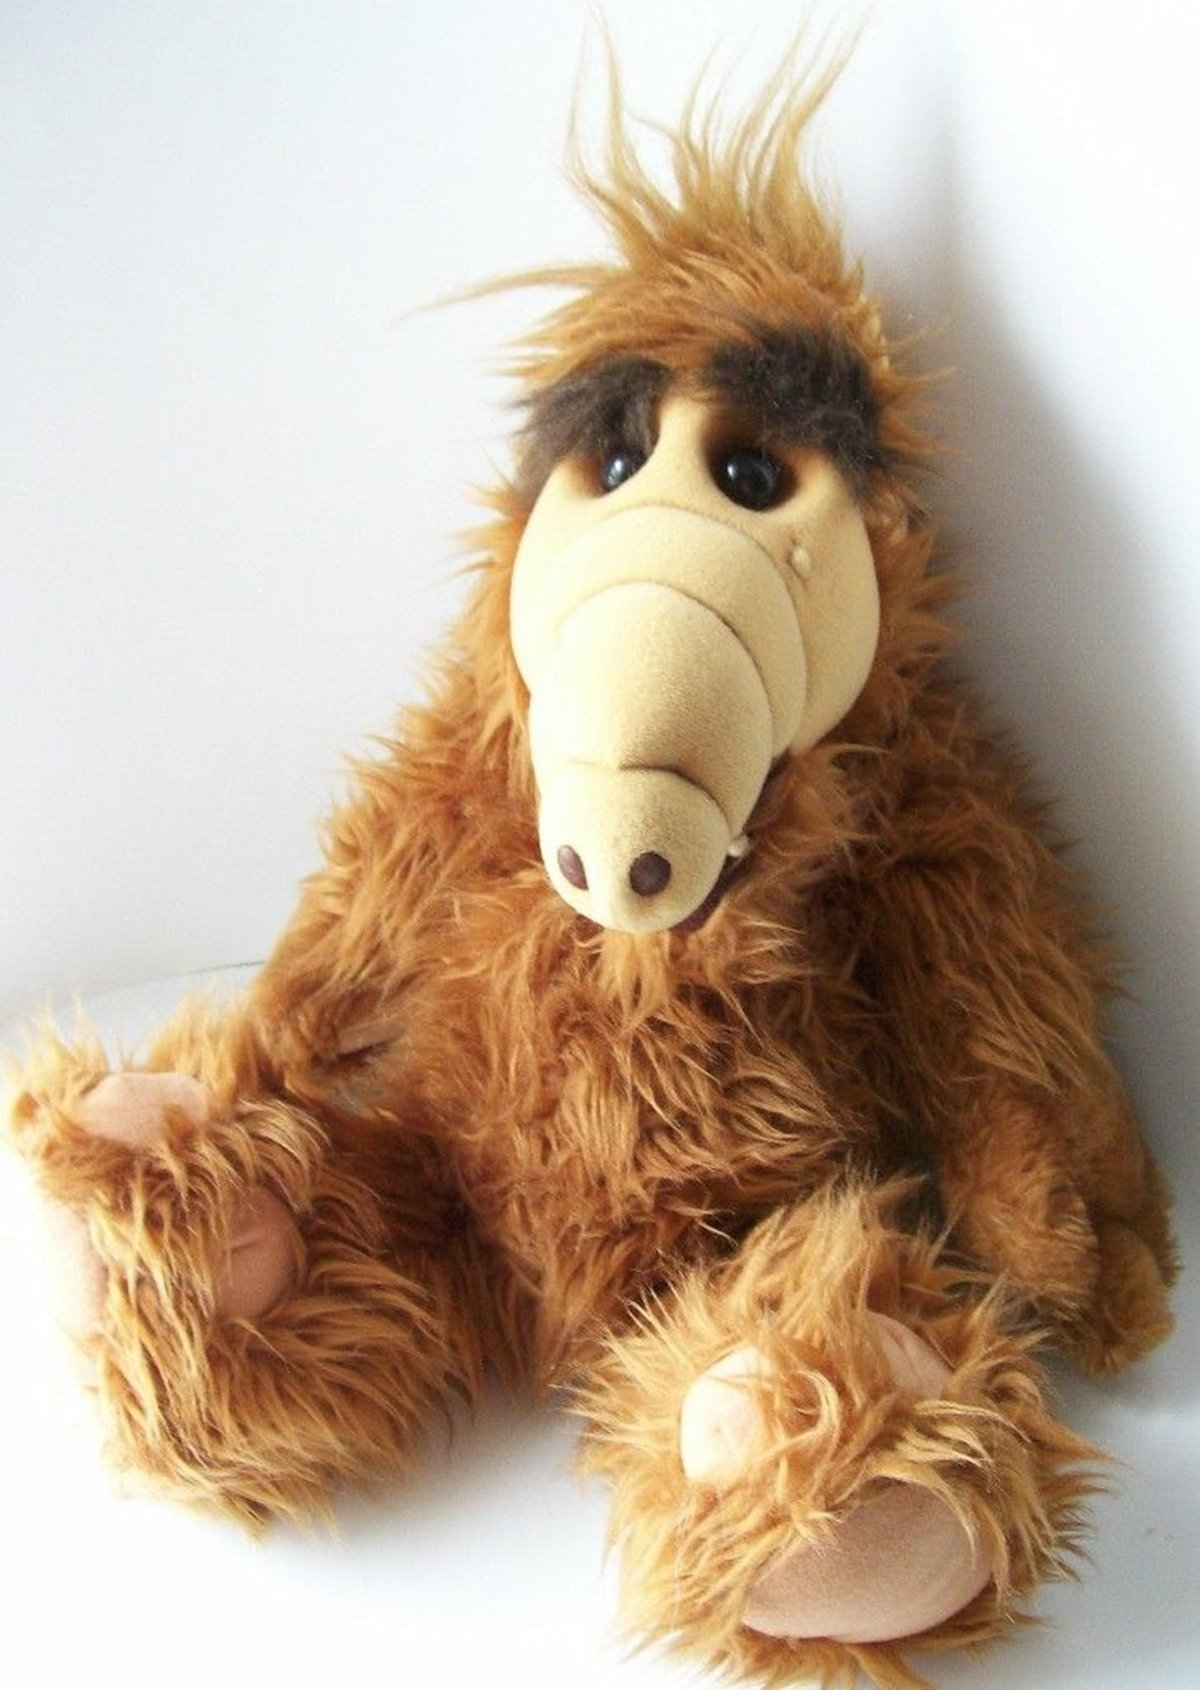 1 55 QUIZ: How Many Of These 15 Cuddly Toys Did YOU Own As A Child?